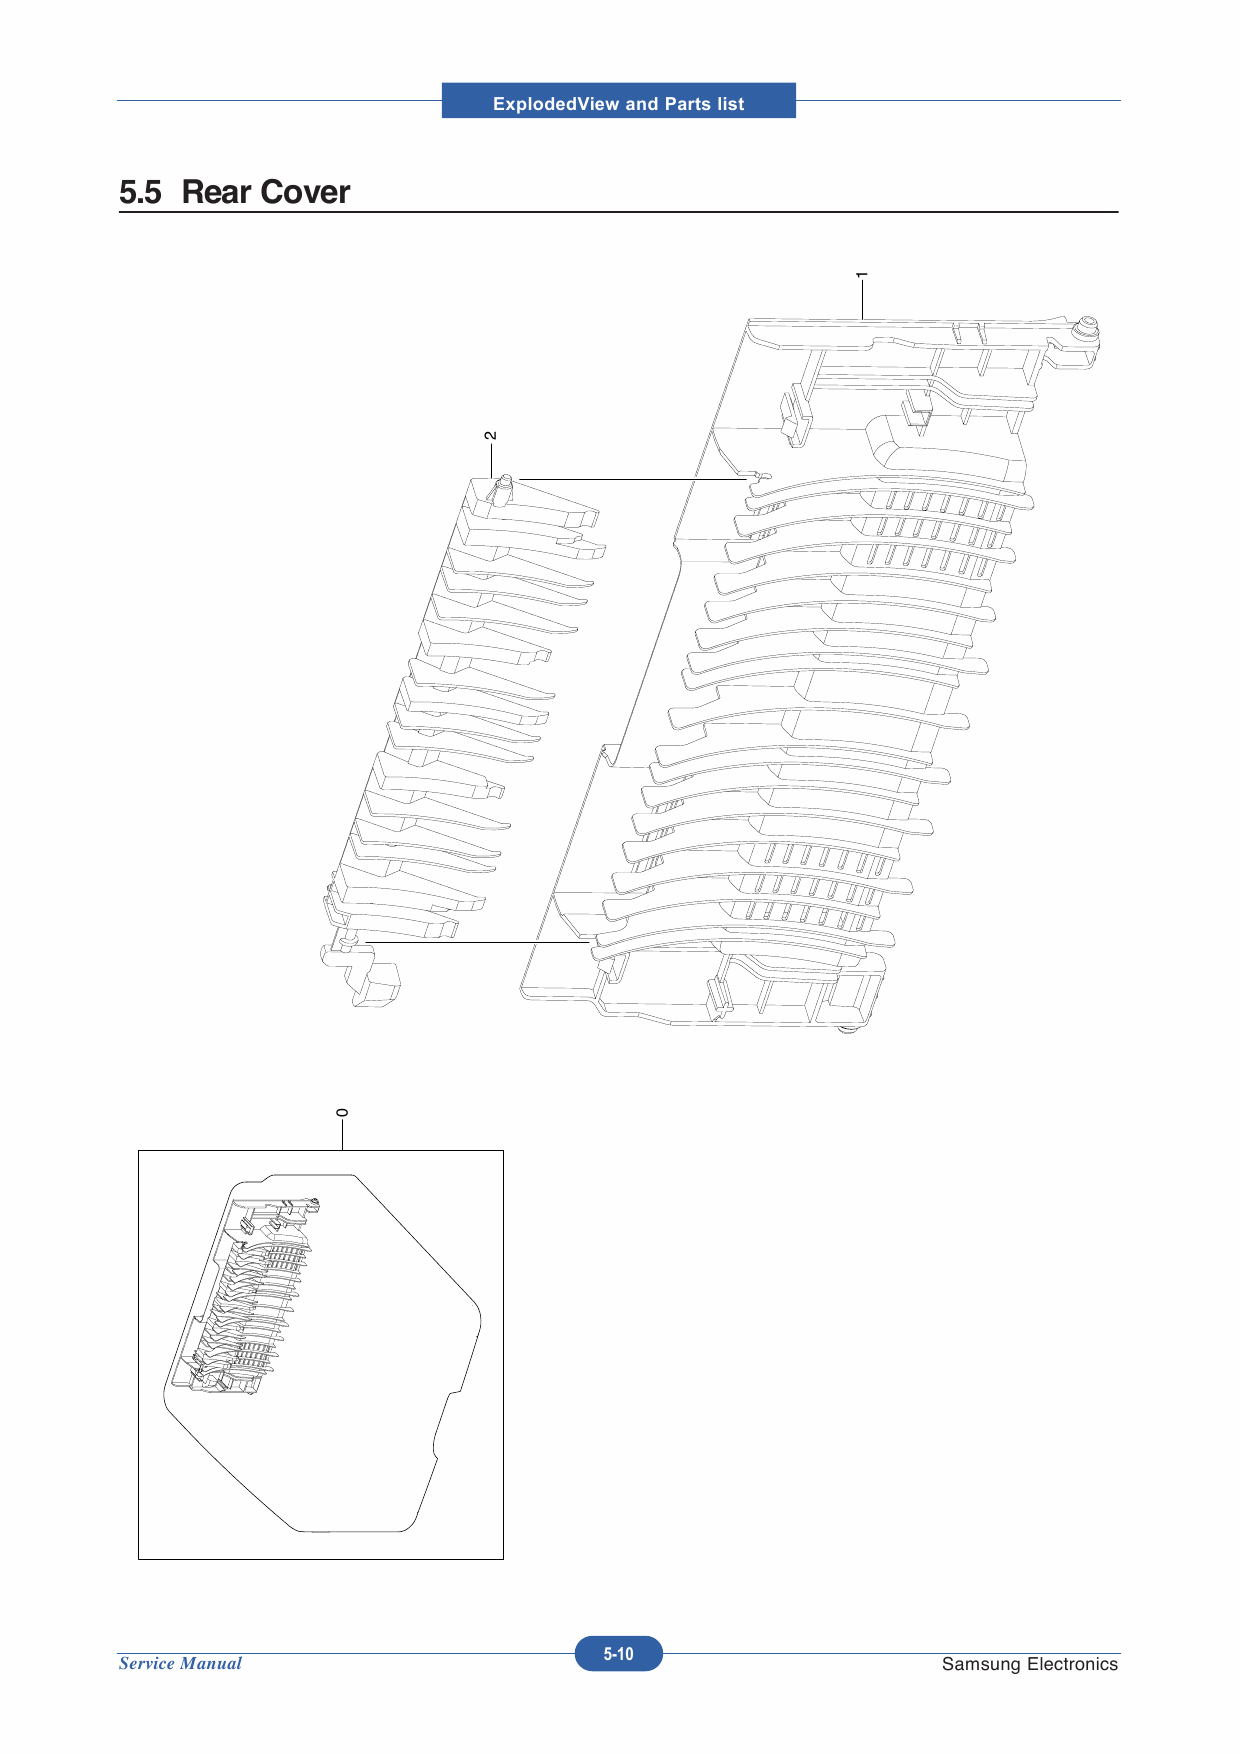 Samsung Laser-Printer ML-2850D 2851ND Parts Manual